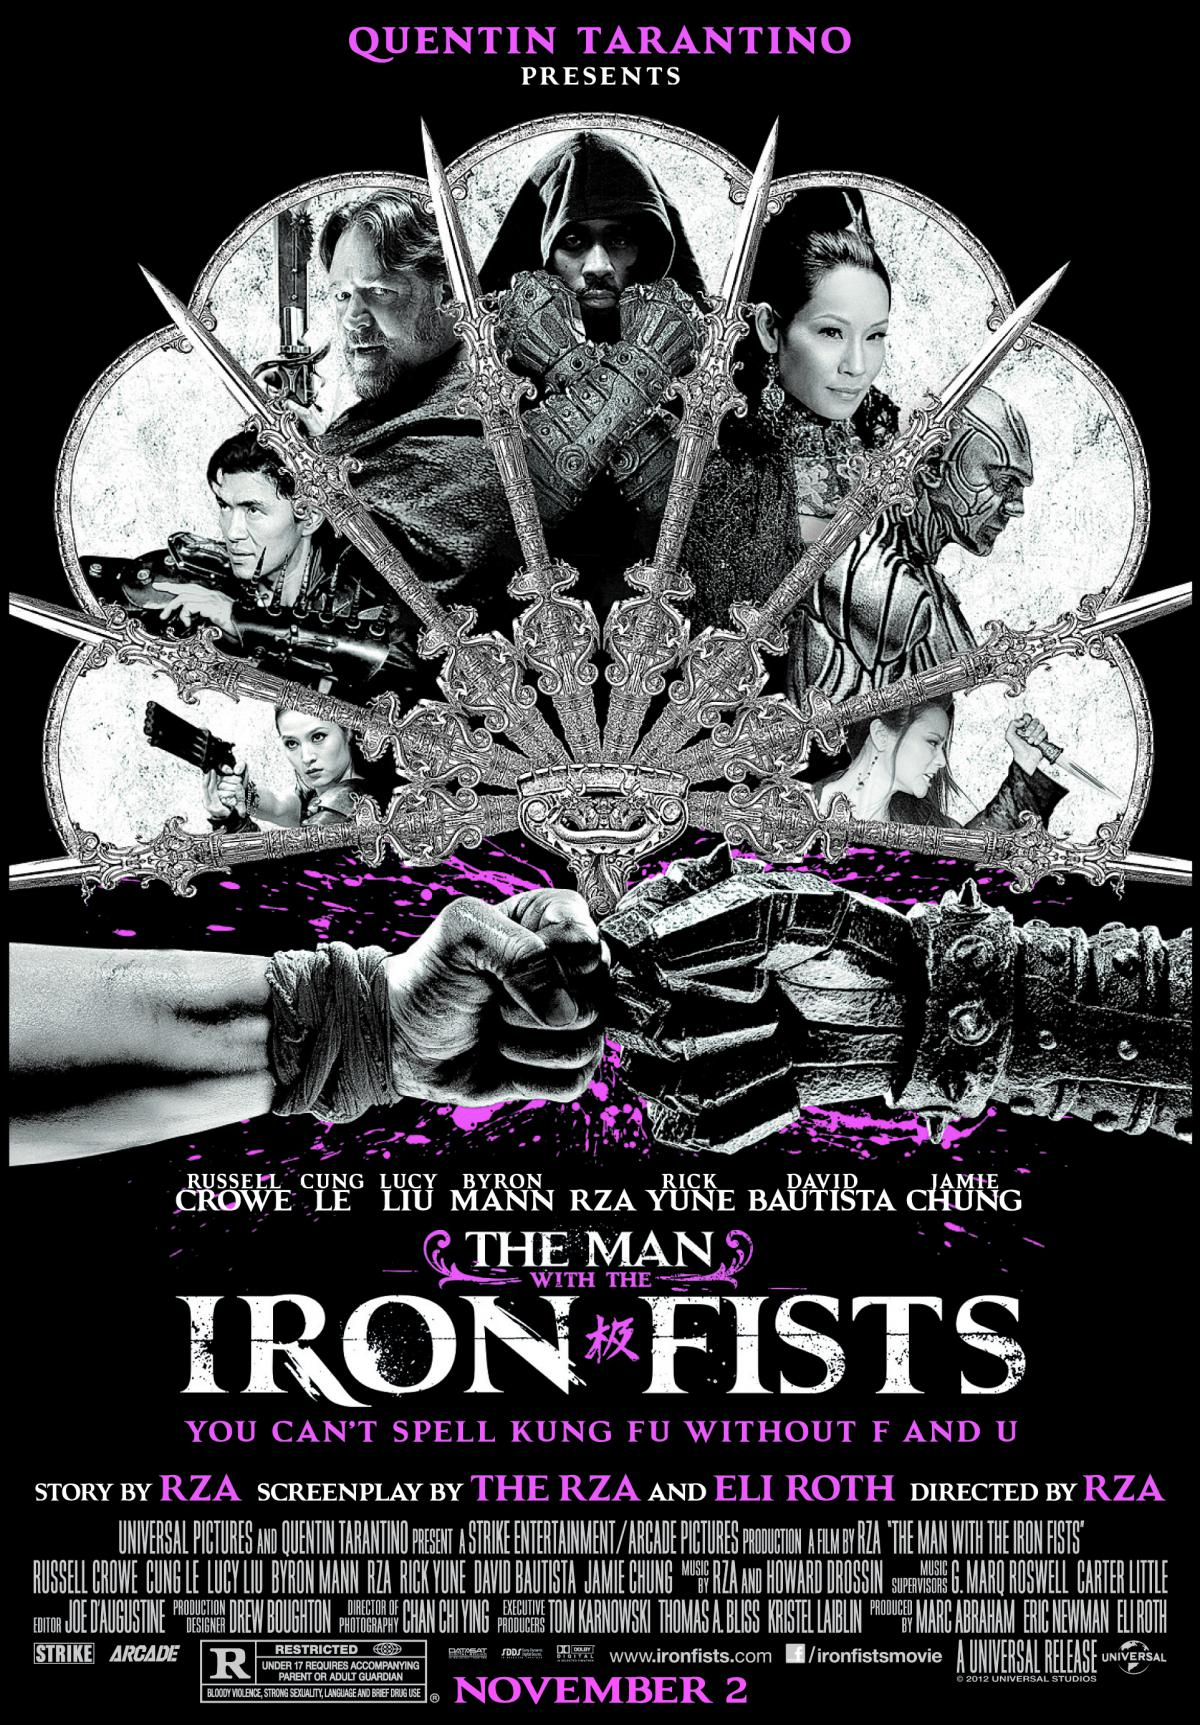 the-man-with-the-iron-fists-001.jpg